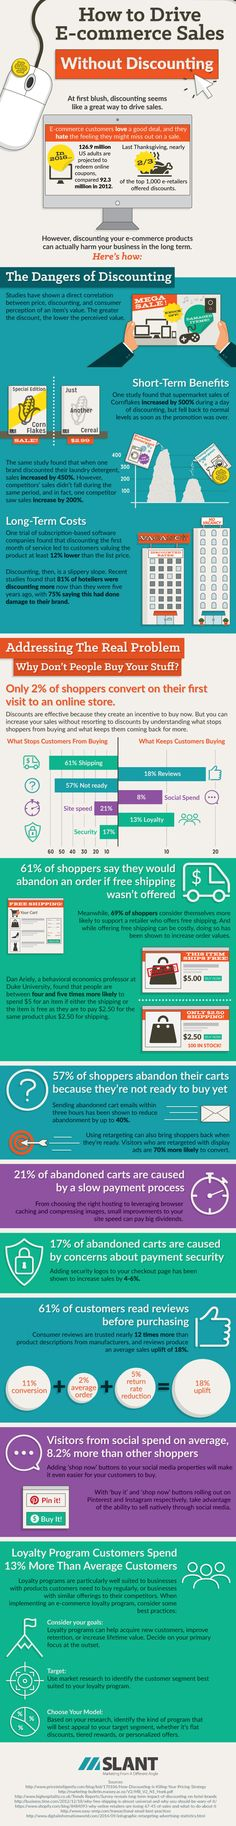 How To Drive E-Commerce Sales #Infographic #HowTo #eCommerce (Computer Tech Technology)